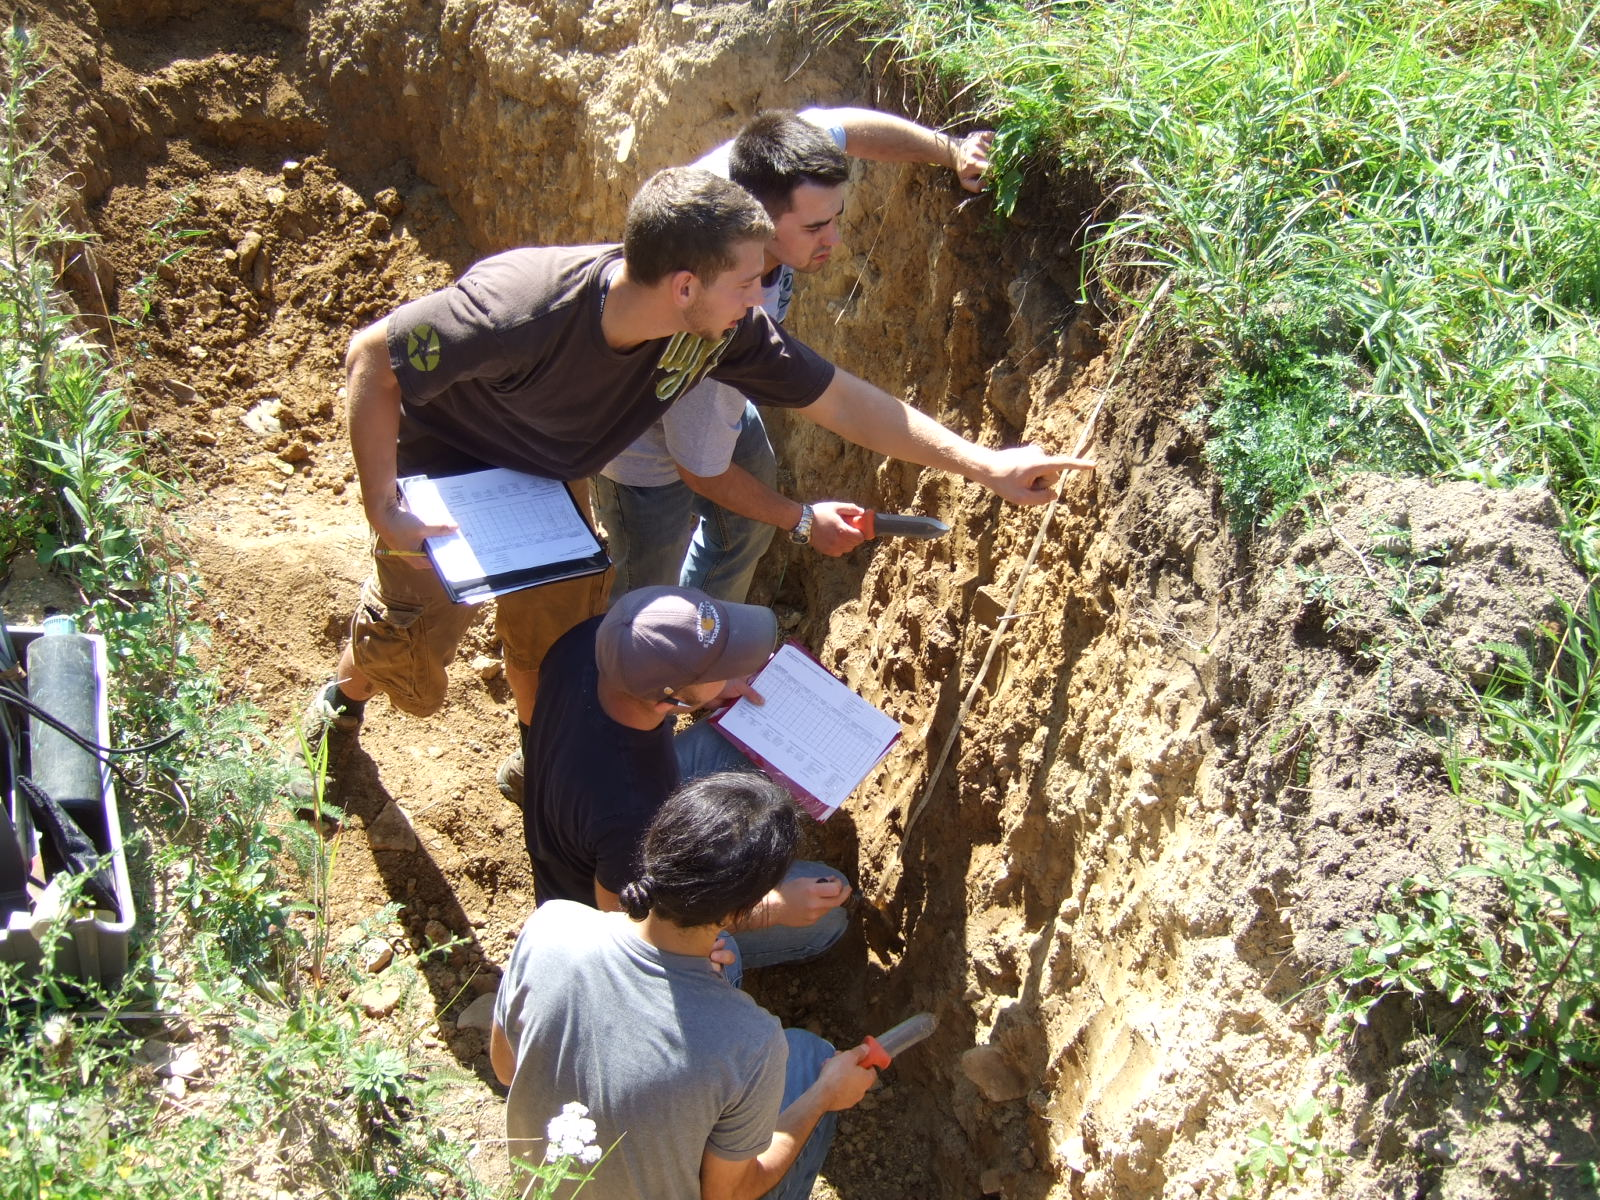 Penn state soil science soil science option in for About soil resources